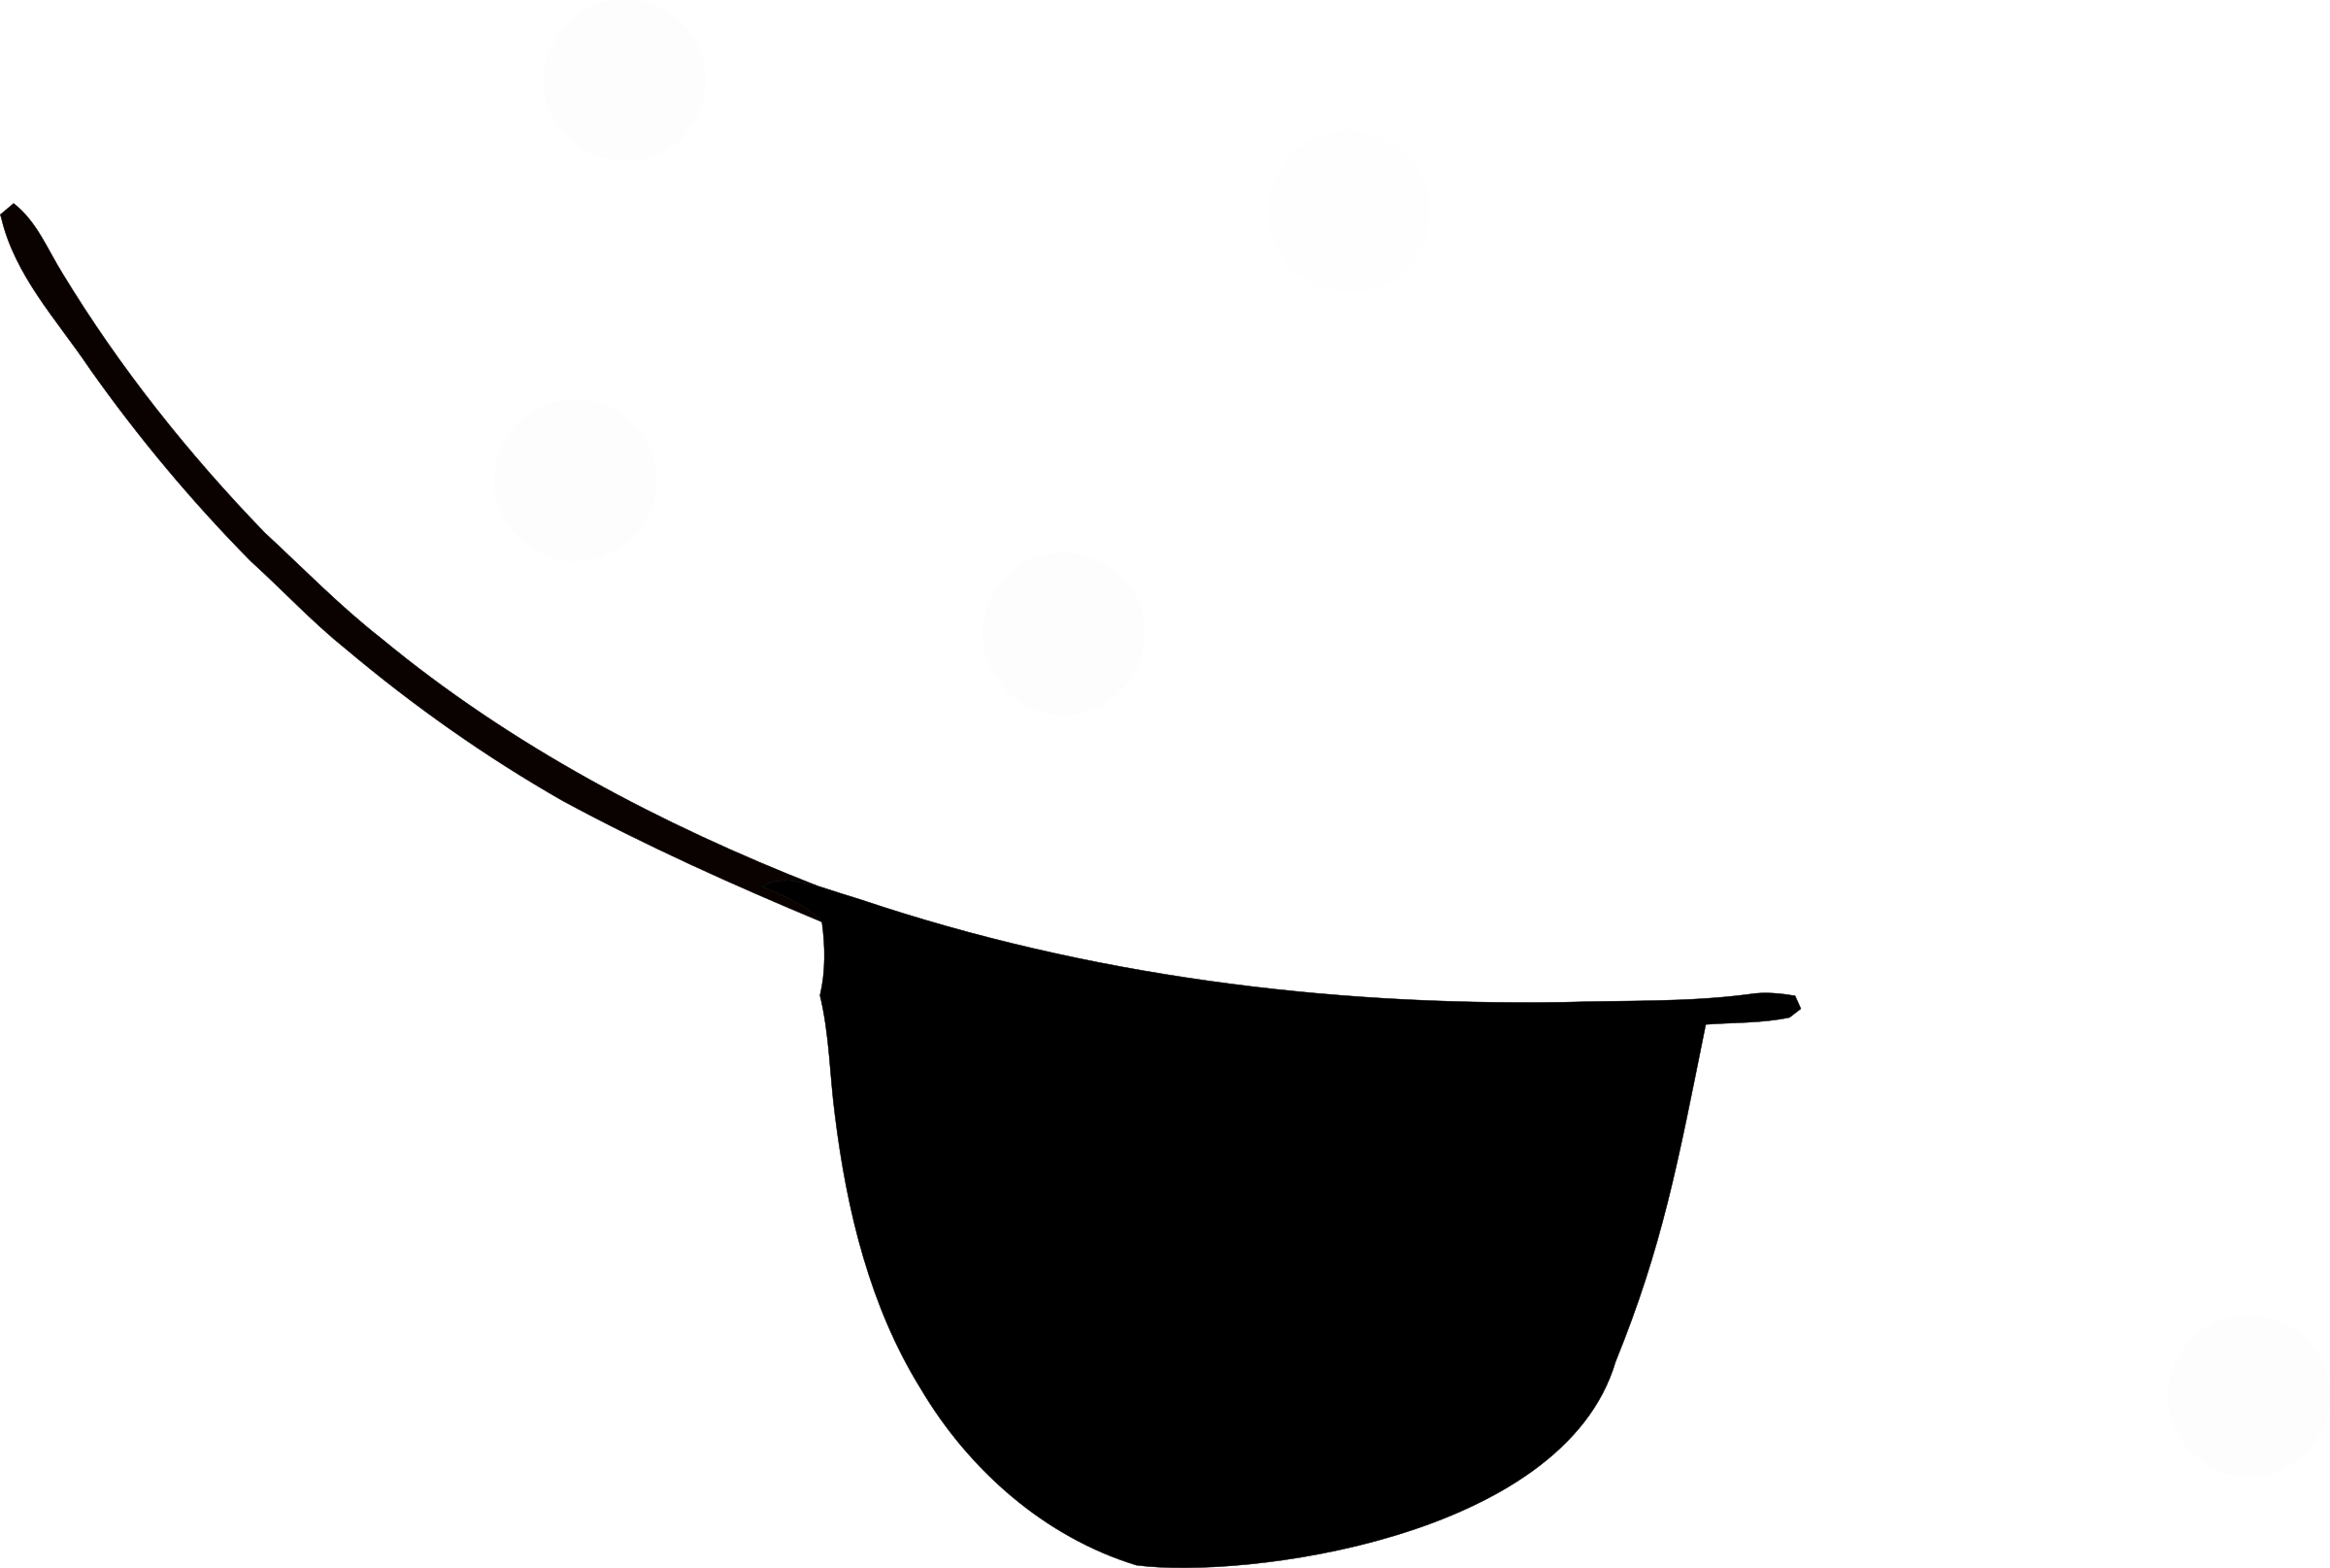 eyepatch png transparent